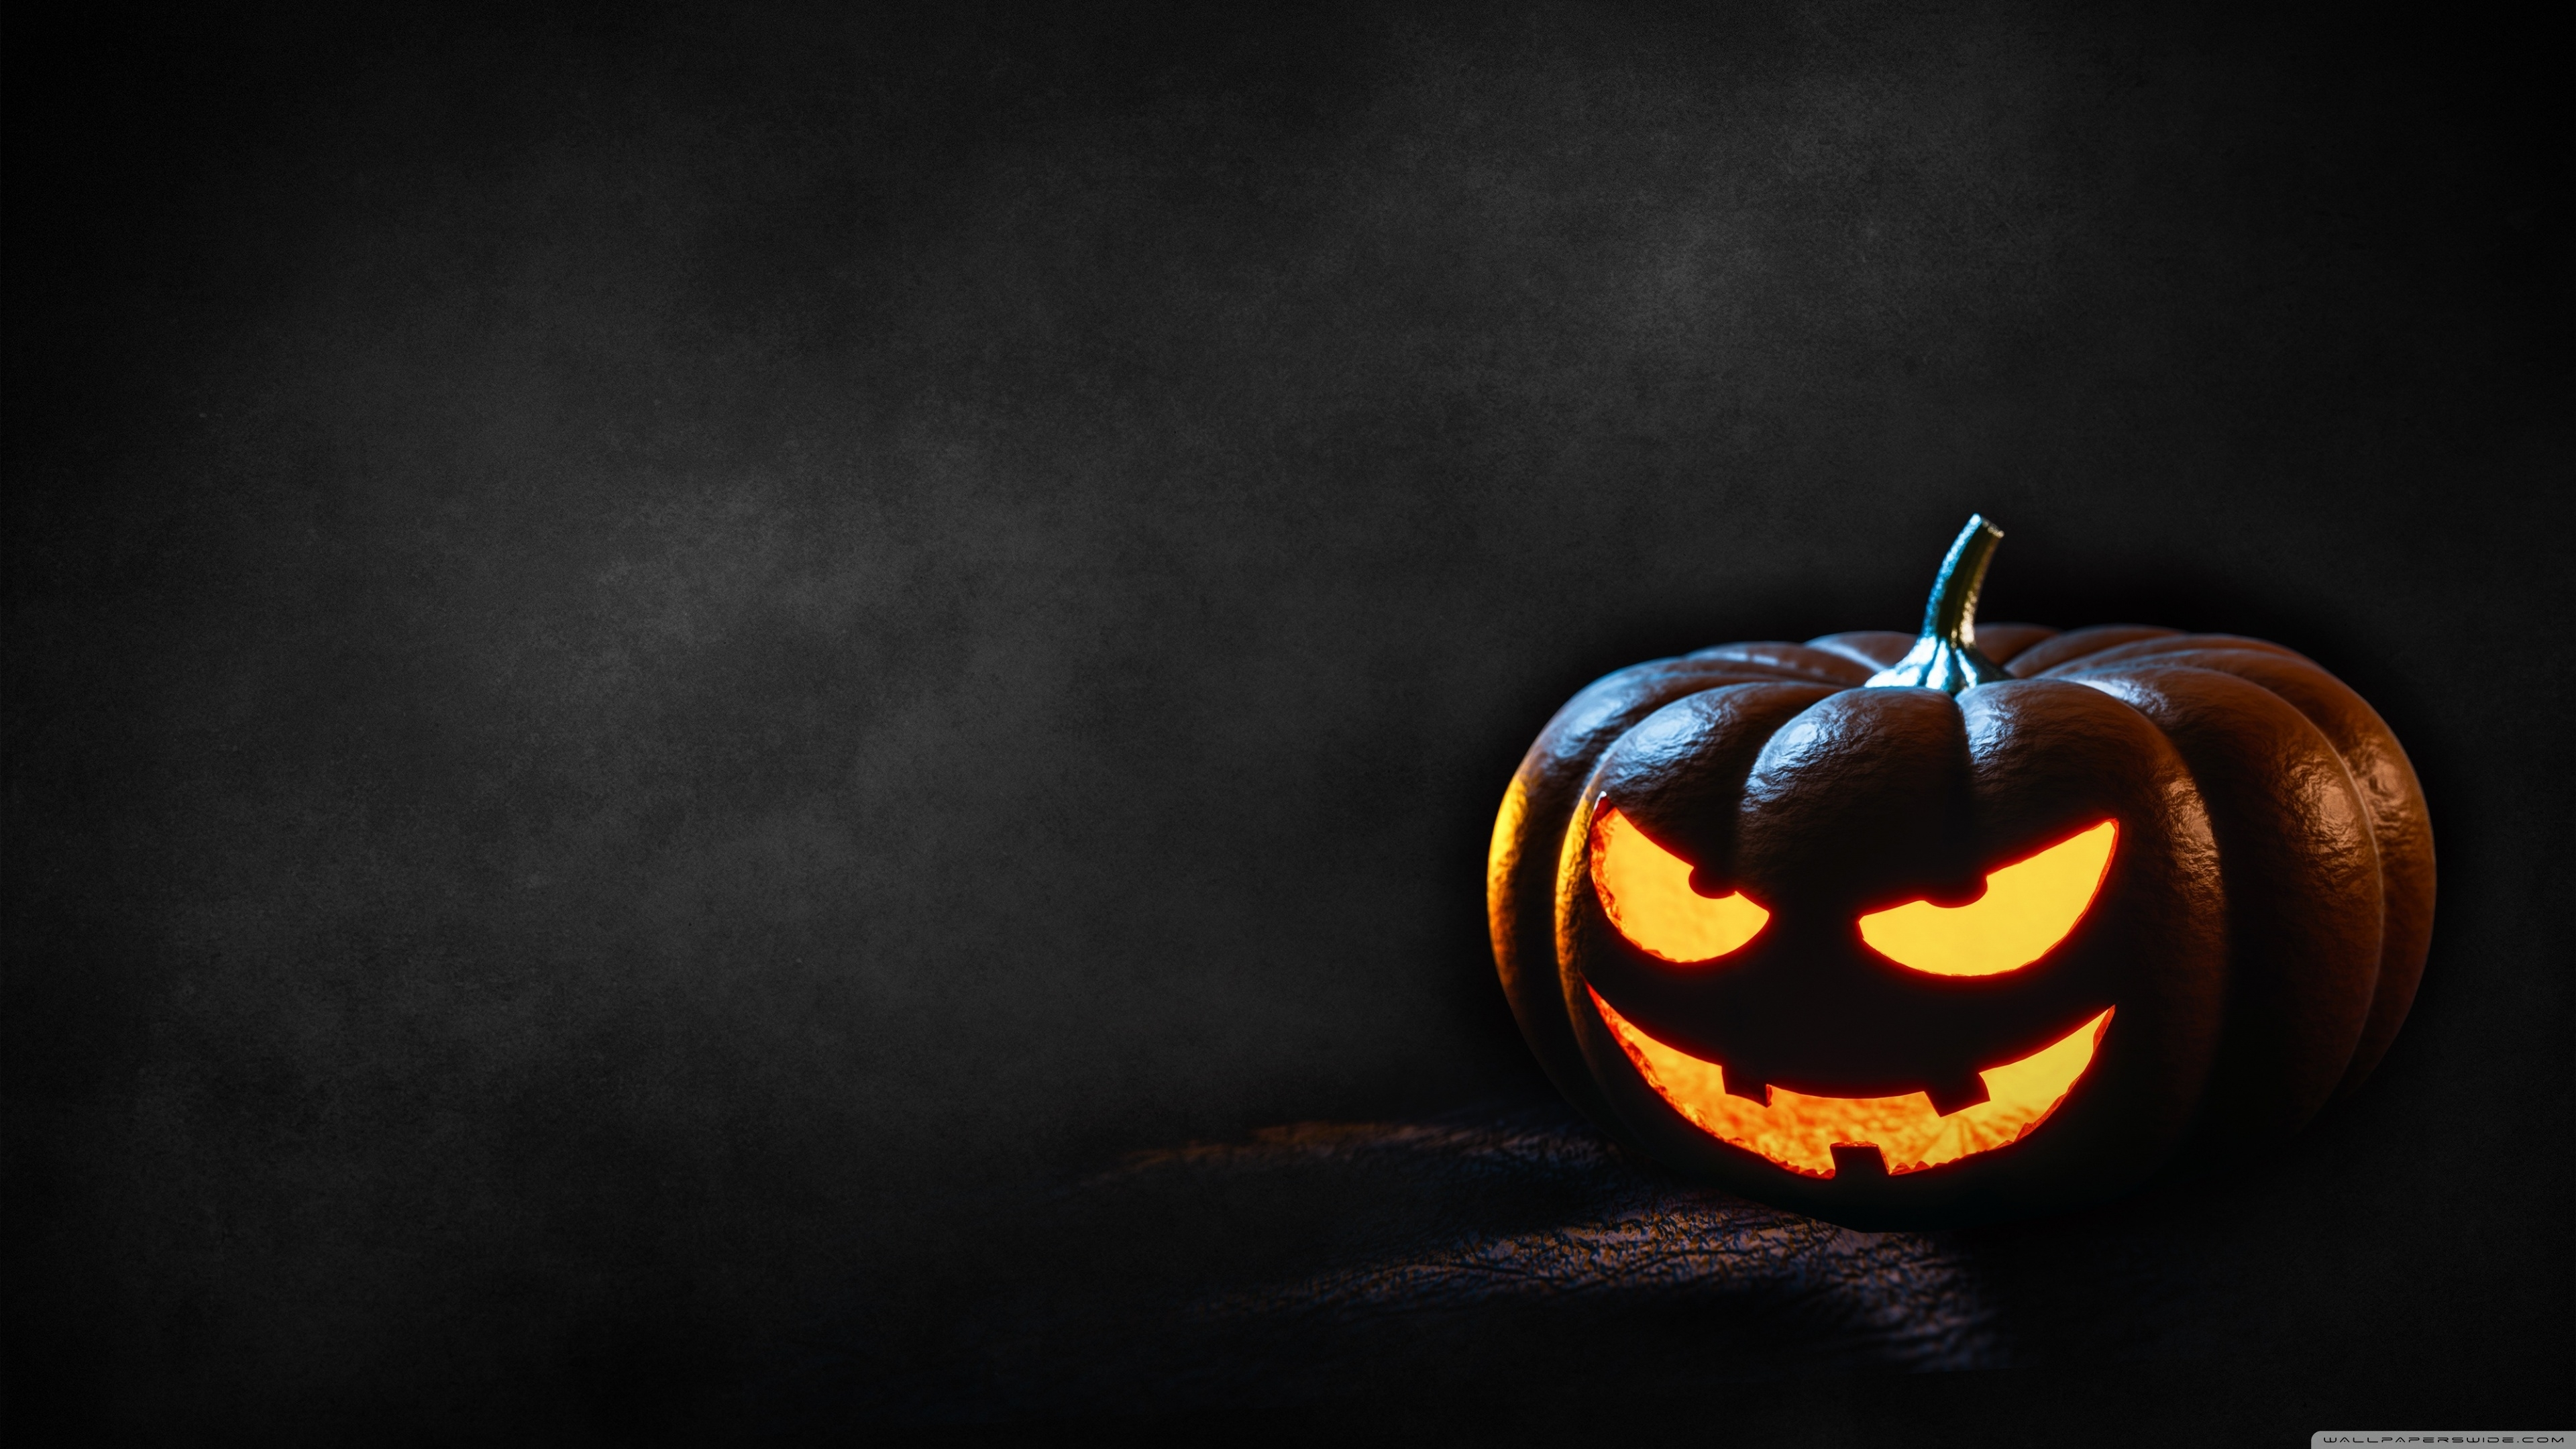 wallpaperswide ❤ halloween hd desktop wallpapers for 4k ultra